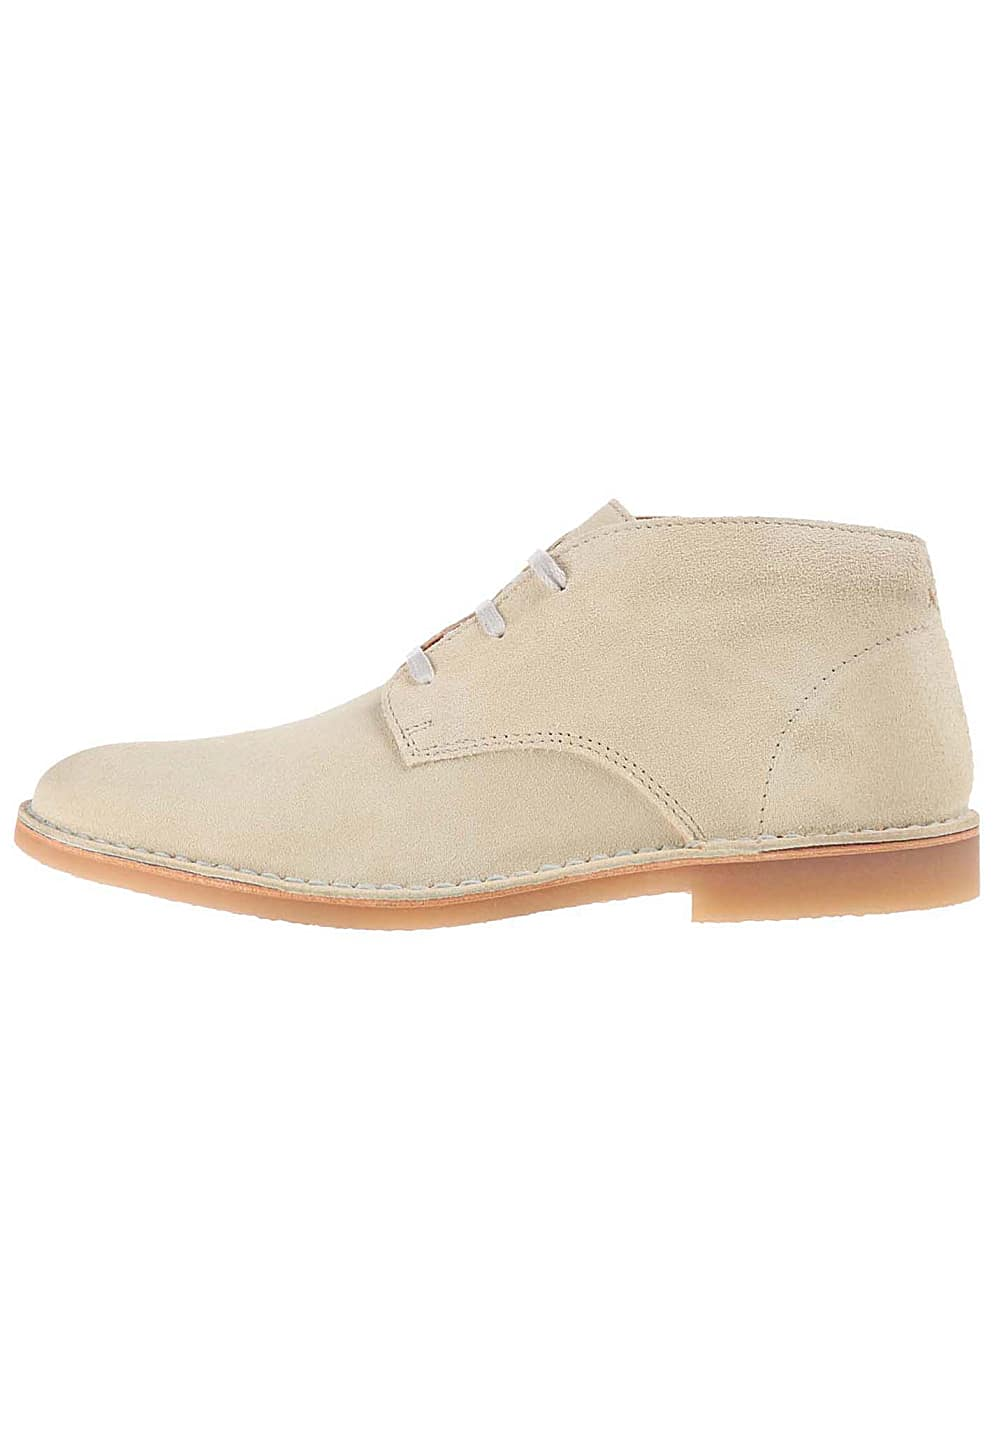 Selected Slhroyce Desert Suede - Fashion Schuhe...